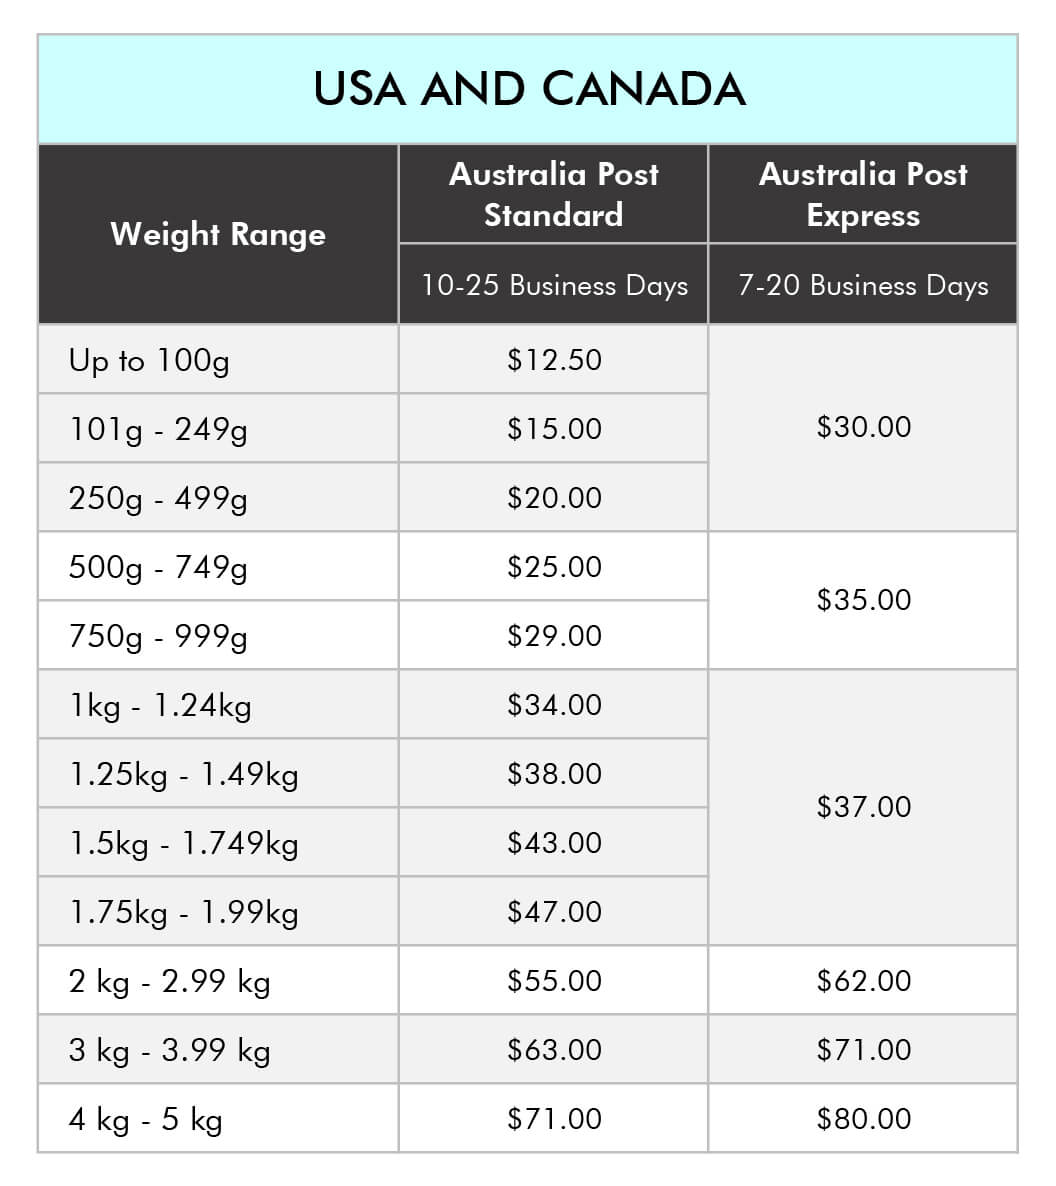 usa and canada postage costs